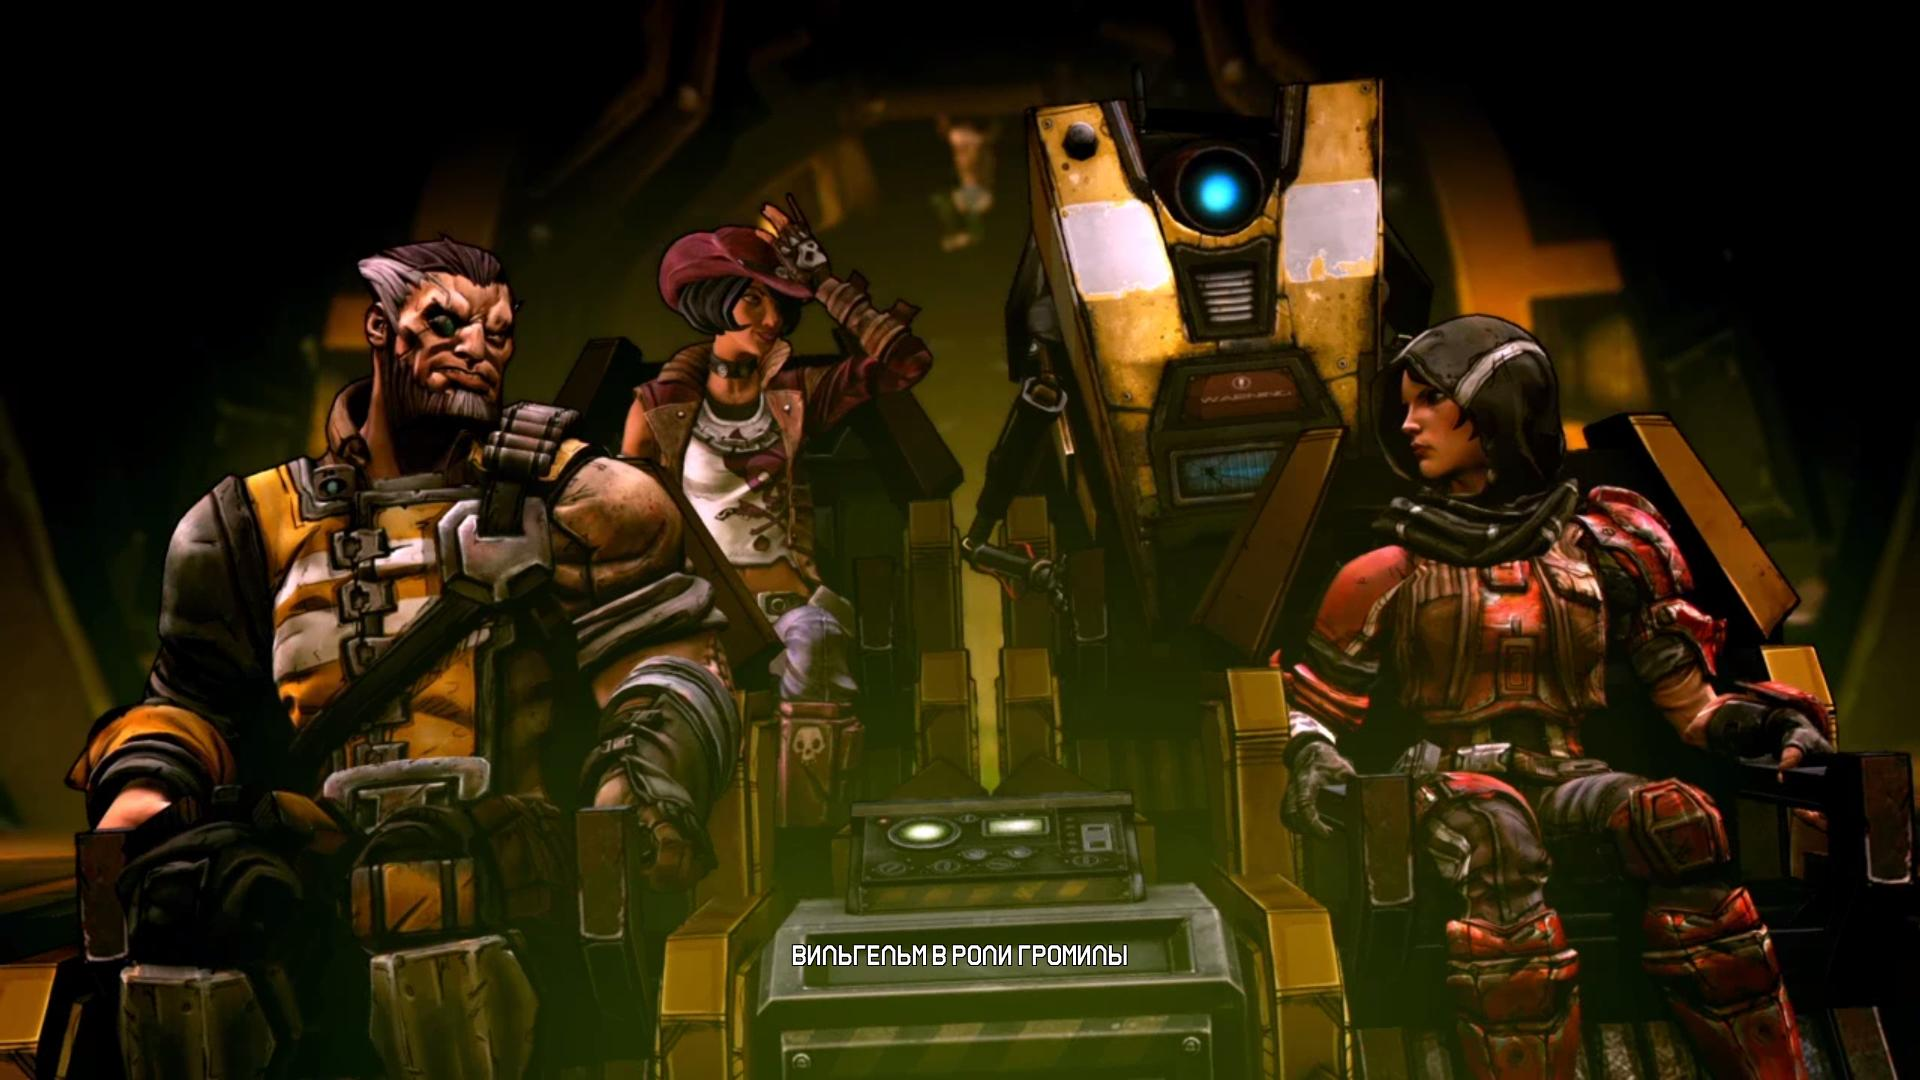 Borderlands: The Pre-Sequel [v 1.0.7 + 6 DLC] (2014) PC | RePack by Mizantrop1337 - Скриншот 2